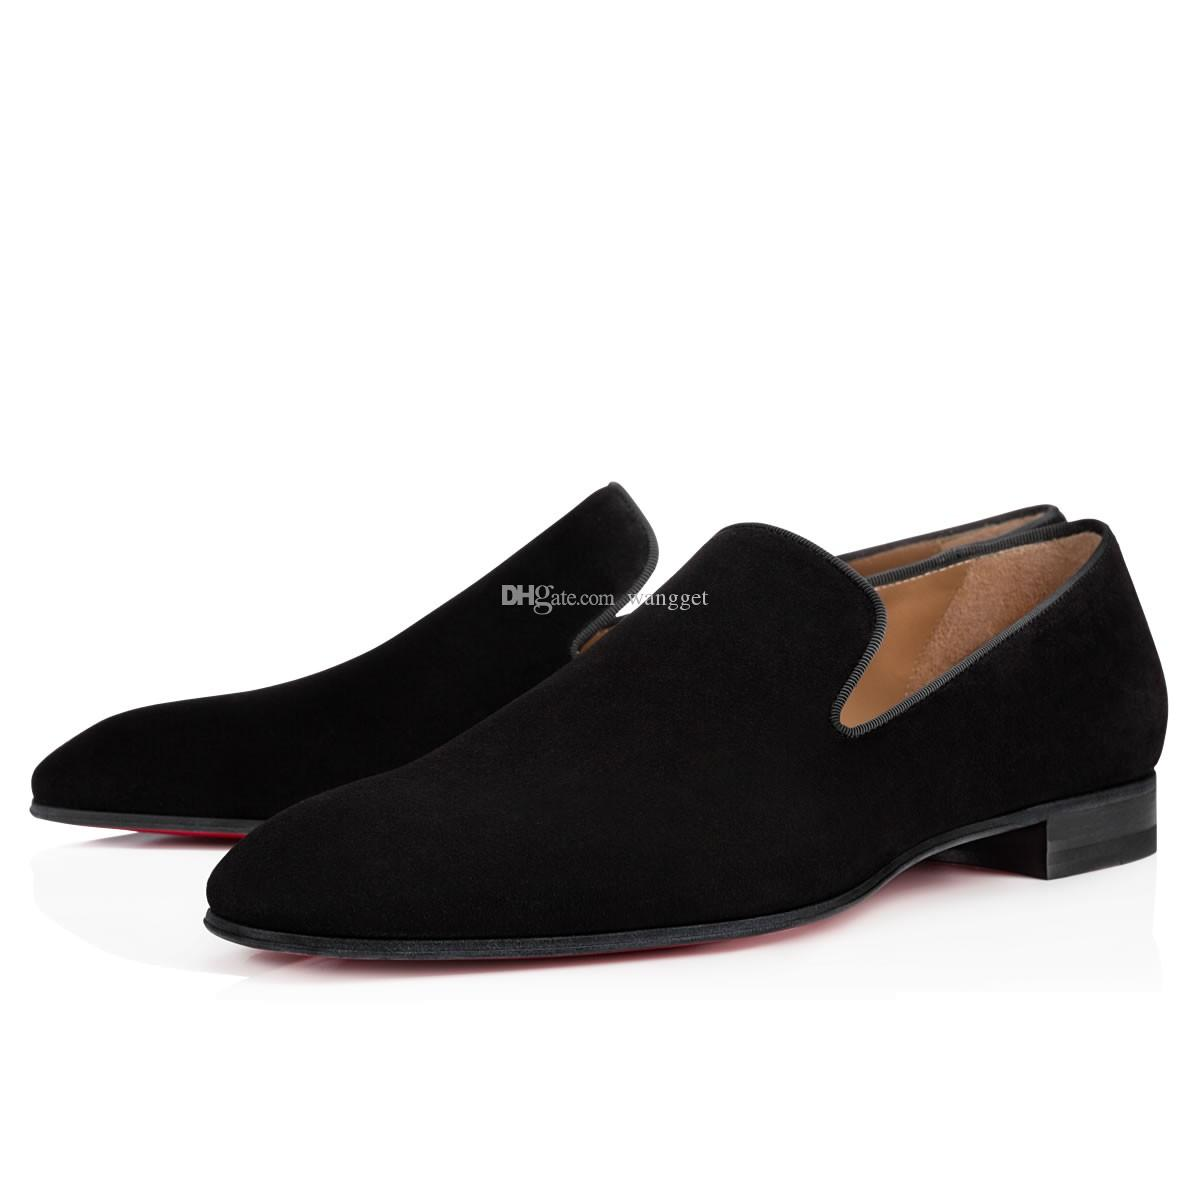 Marca Red Mocassini inferiore di lusso festa di nozze scarpe firmate NERO VERNICE Dress Shoes pelle scamosciata per Mens Slip On Flats